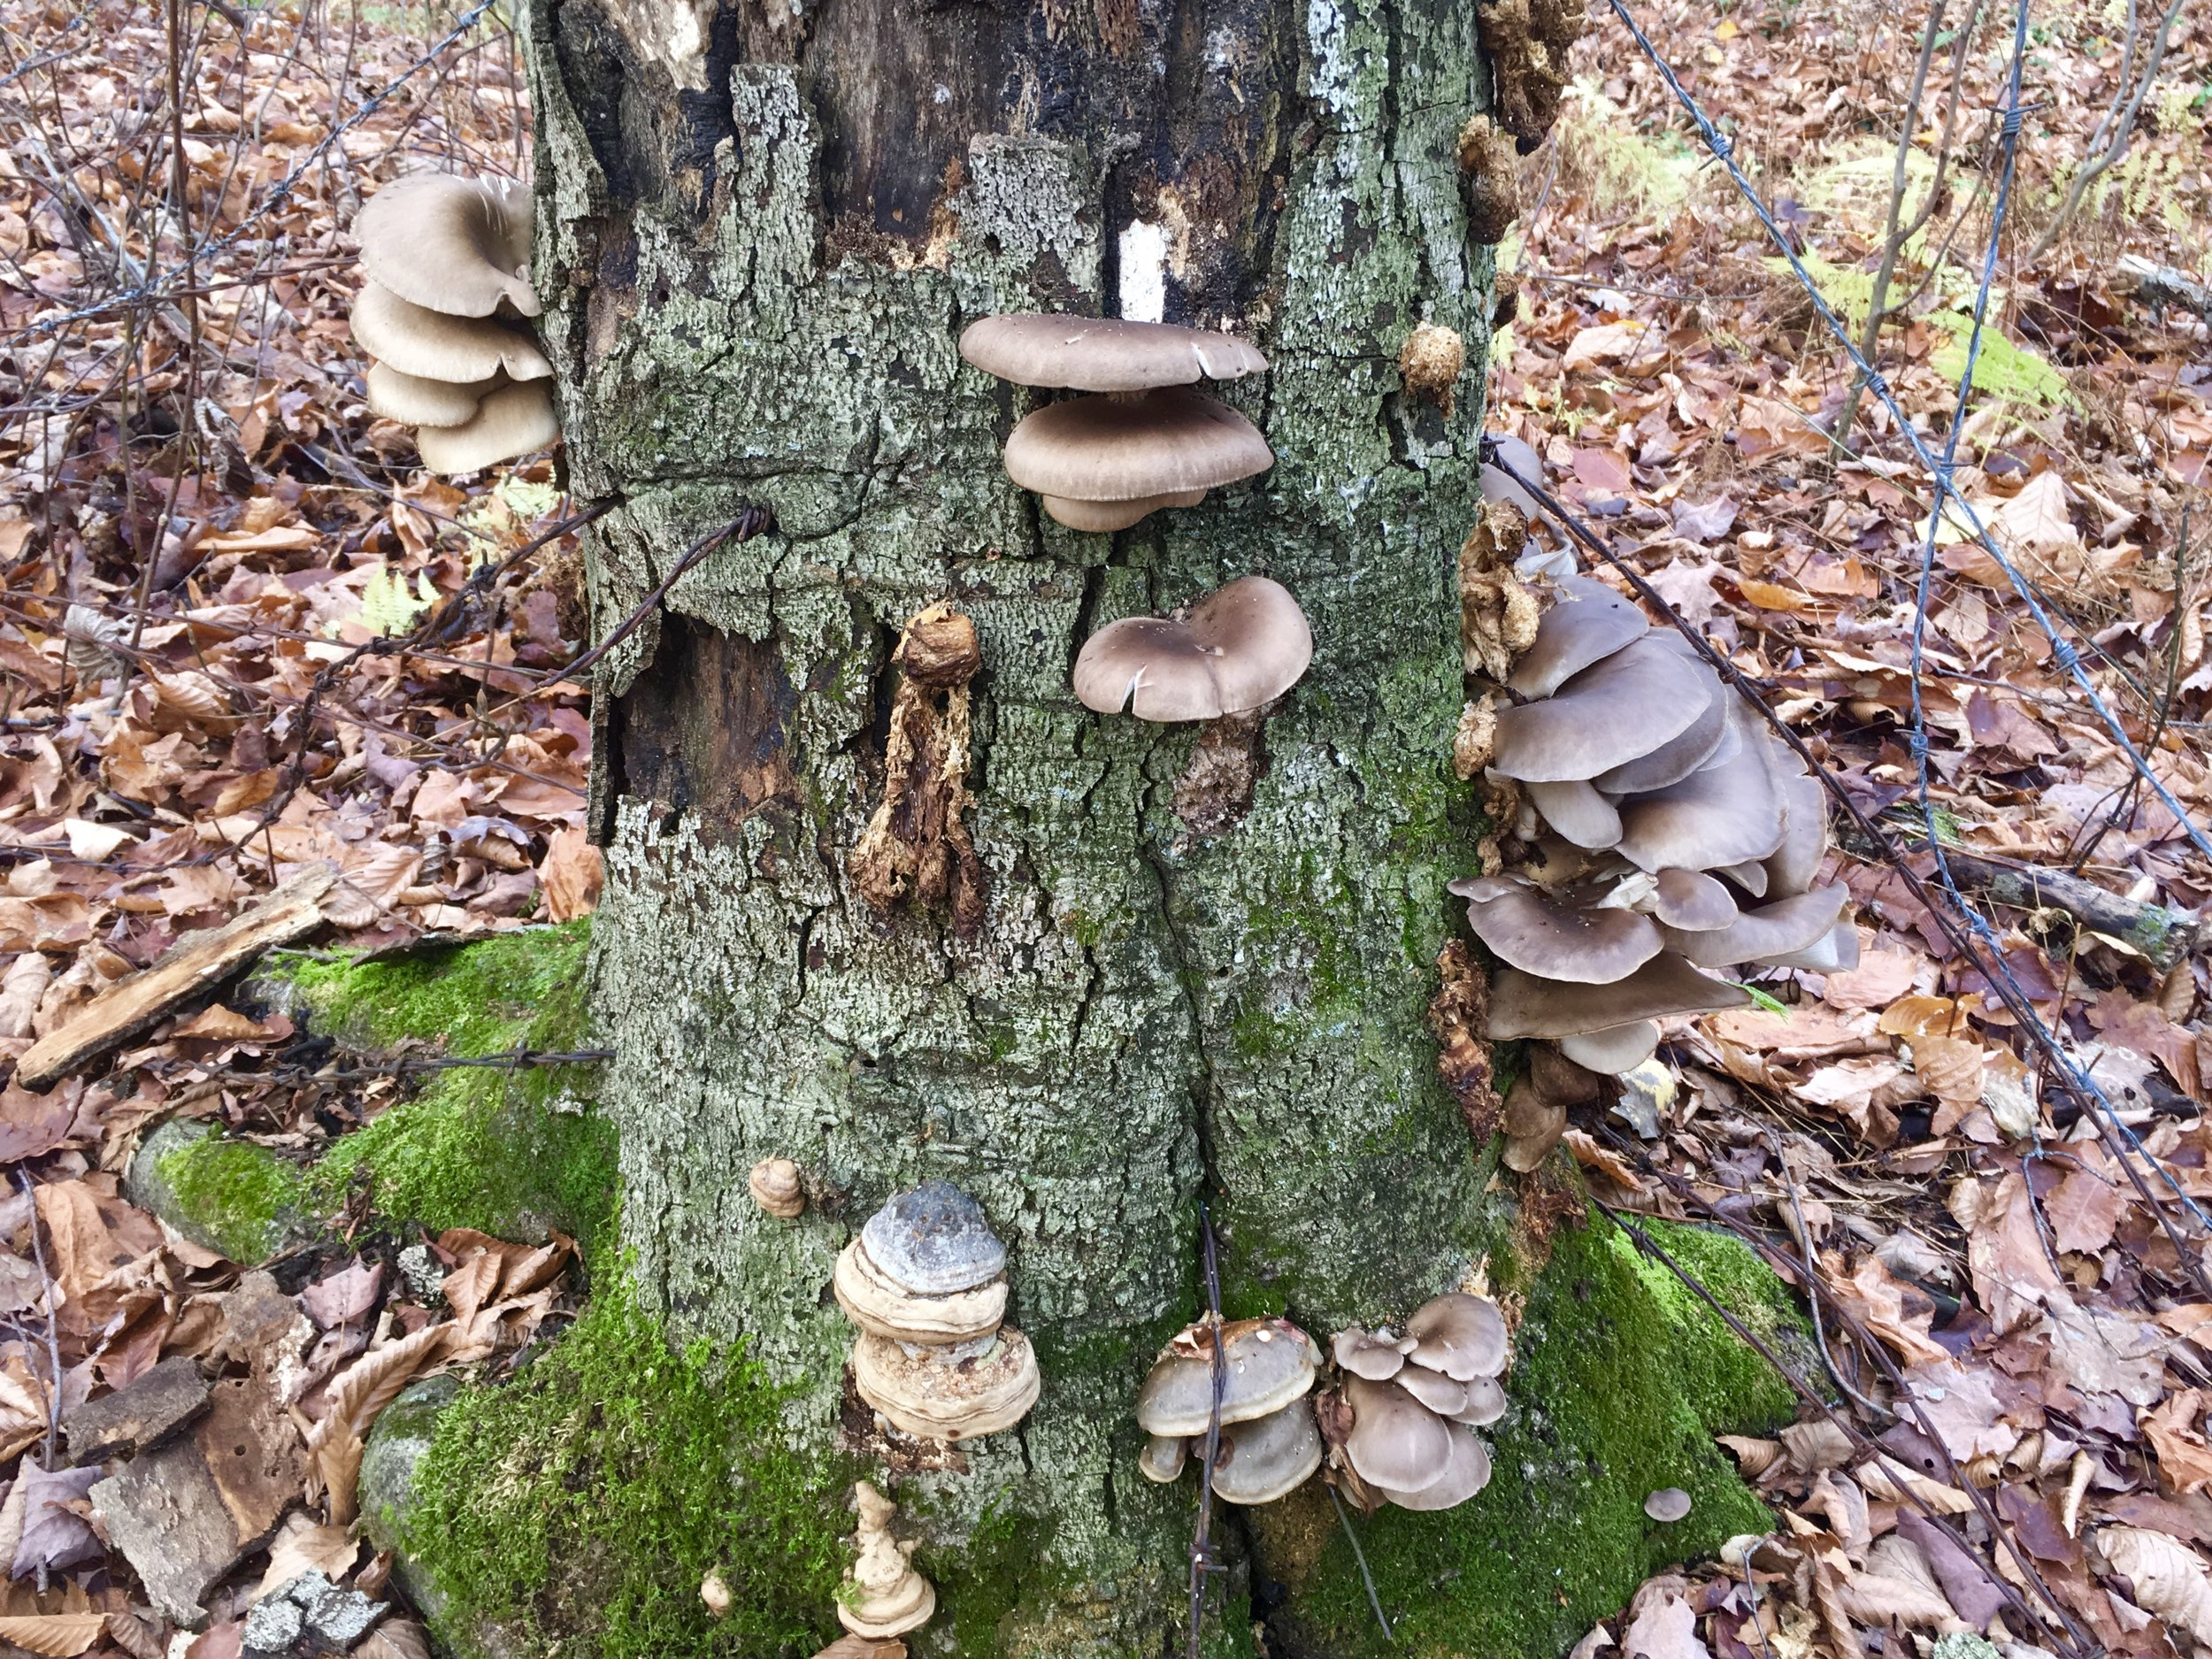 - Wild oyster mushrooms and horse hoof fungus (fomes fomentarius).